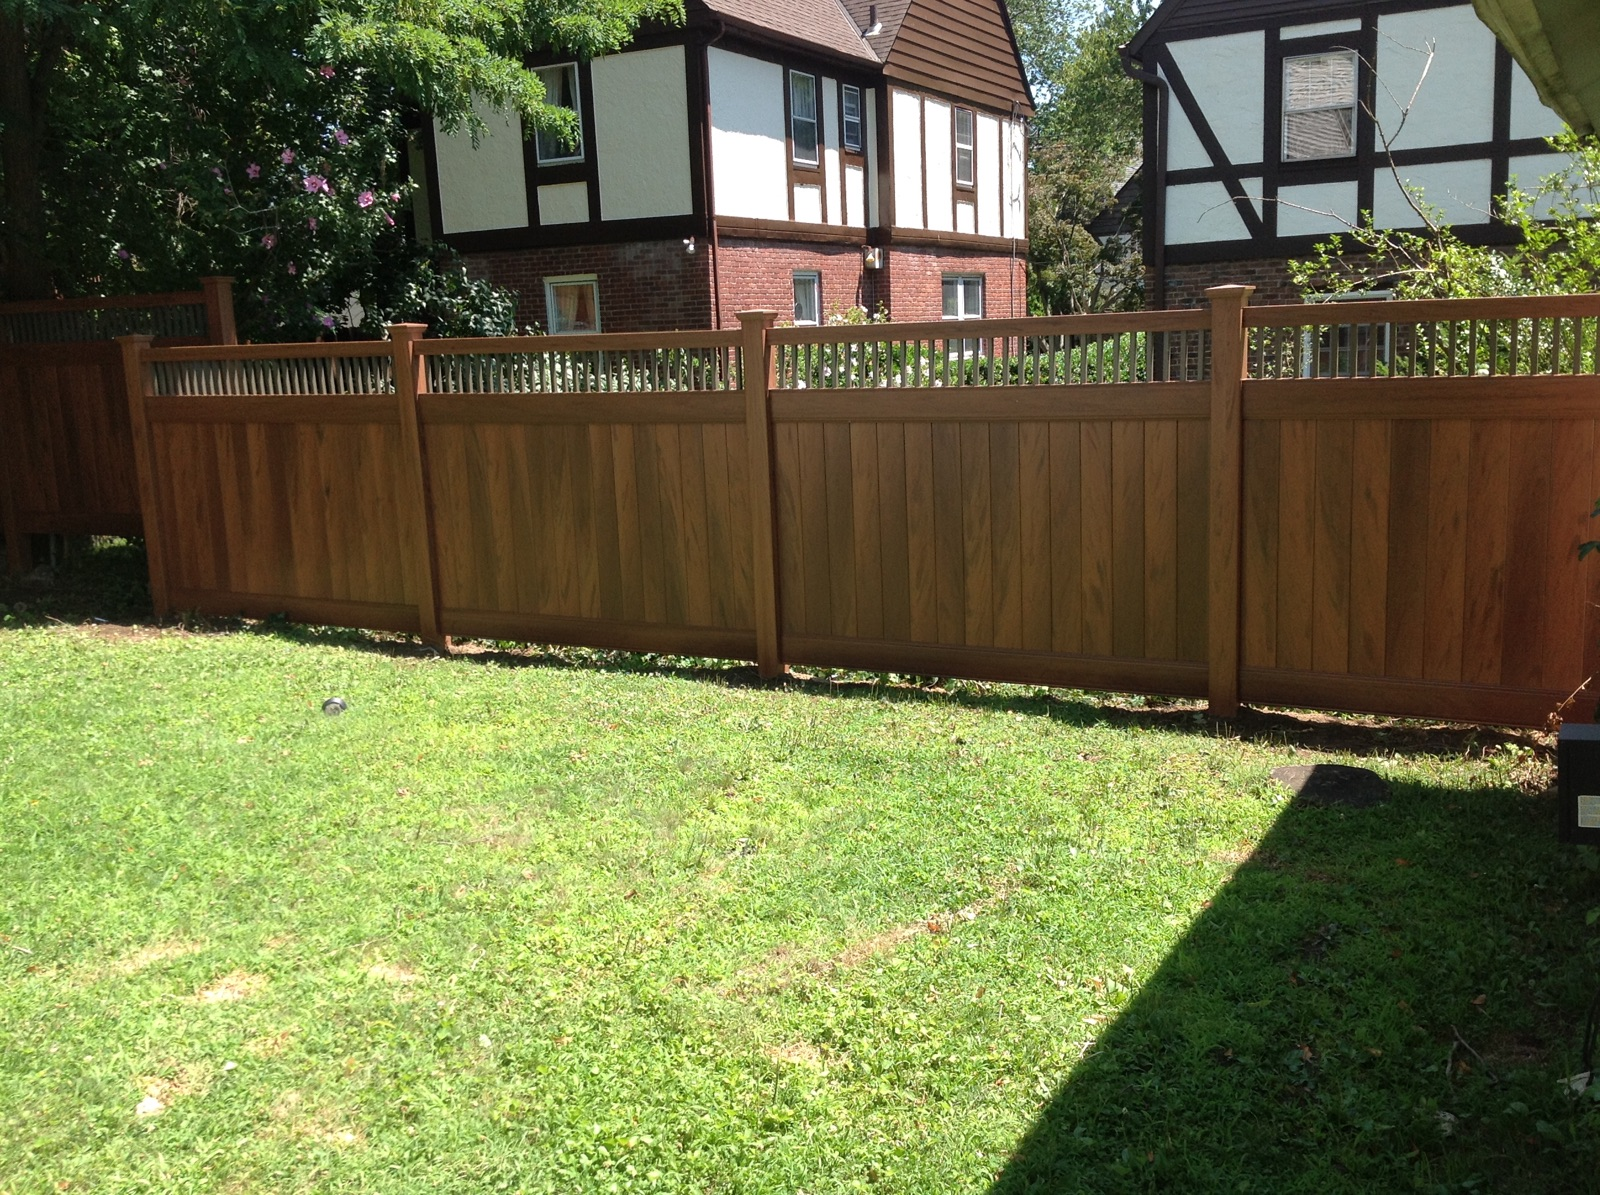 bronxville fence contractors westchester fence company 914 337